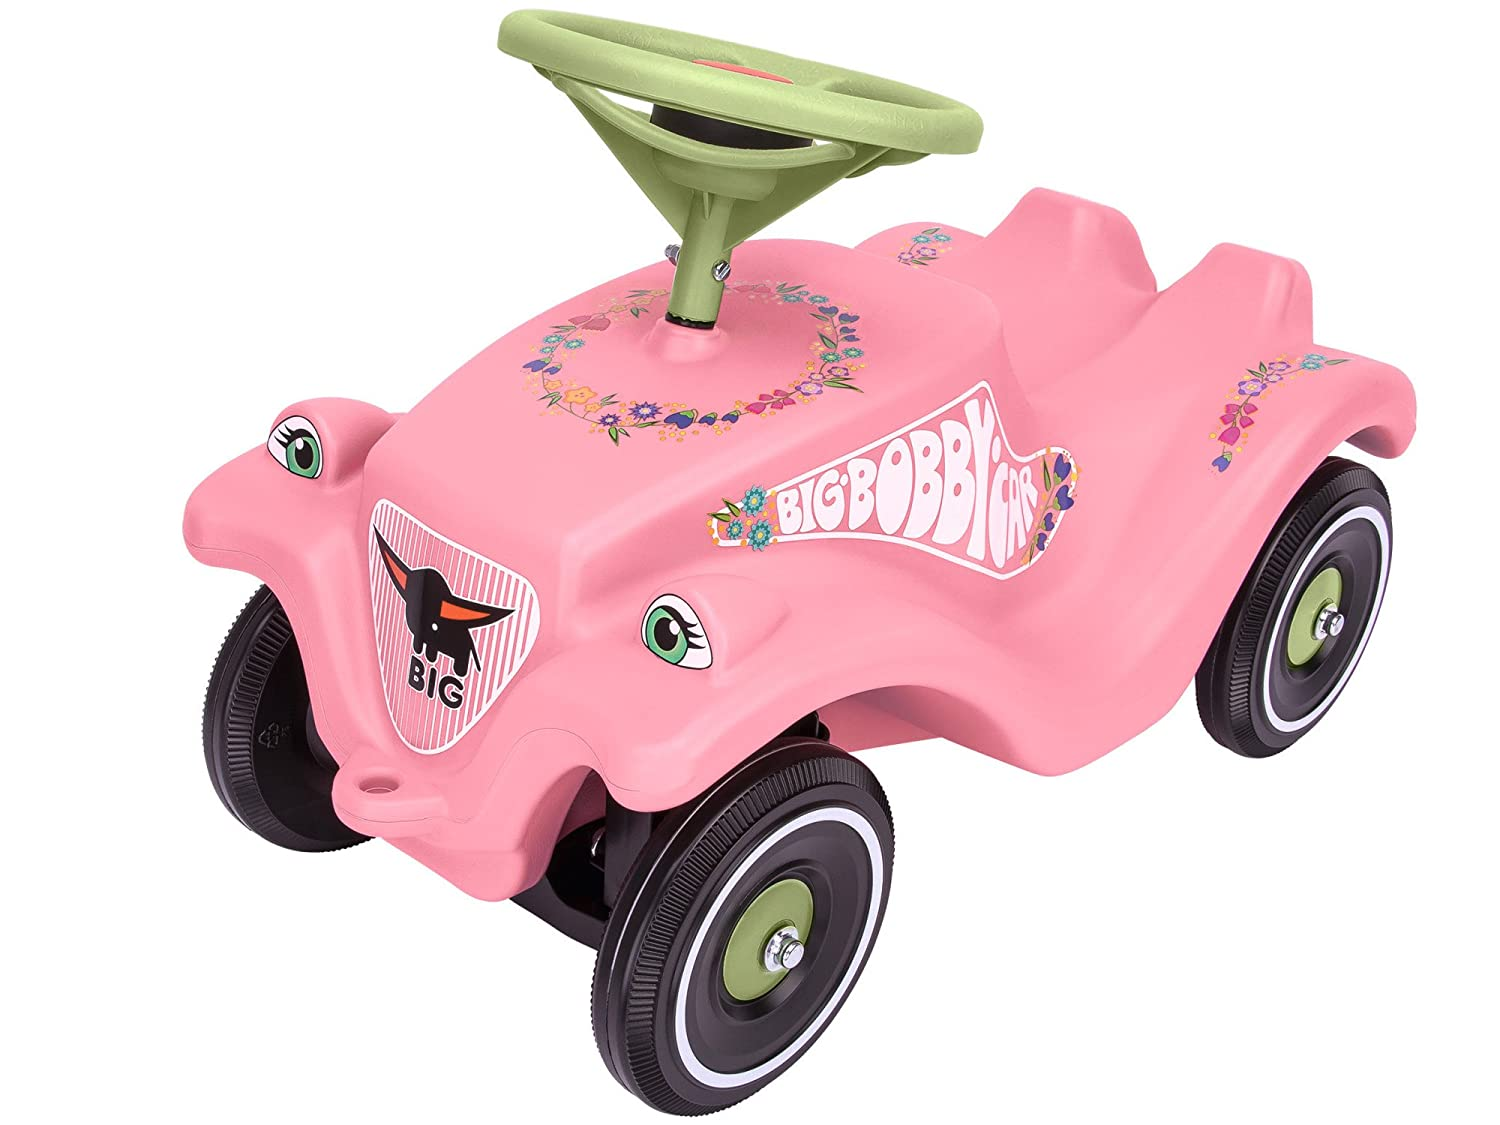 Big Bobby Car Classic Toy Factory 800056110 Flower Rideon – Pink